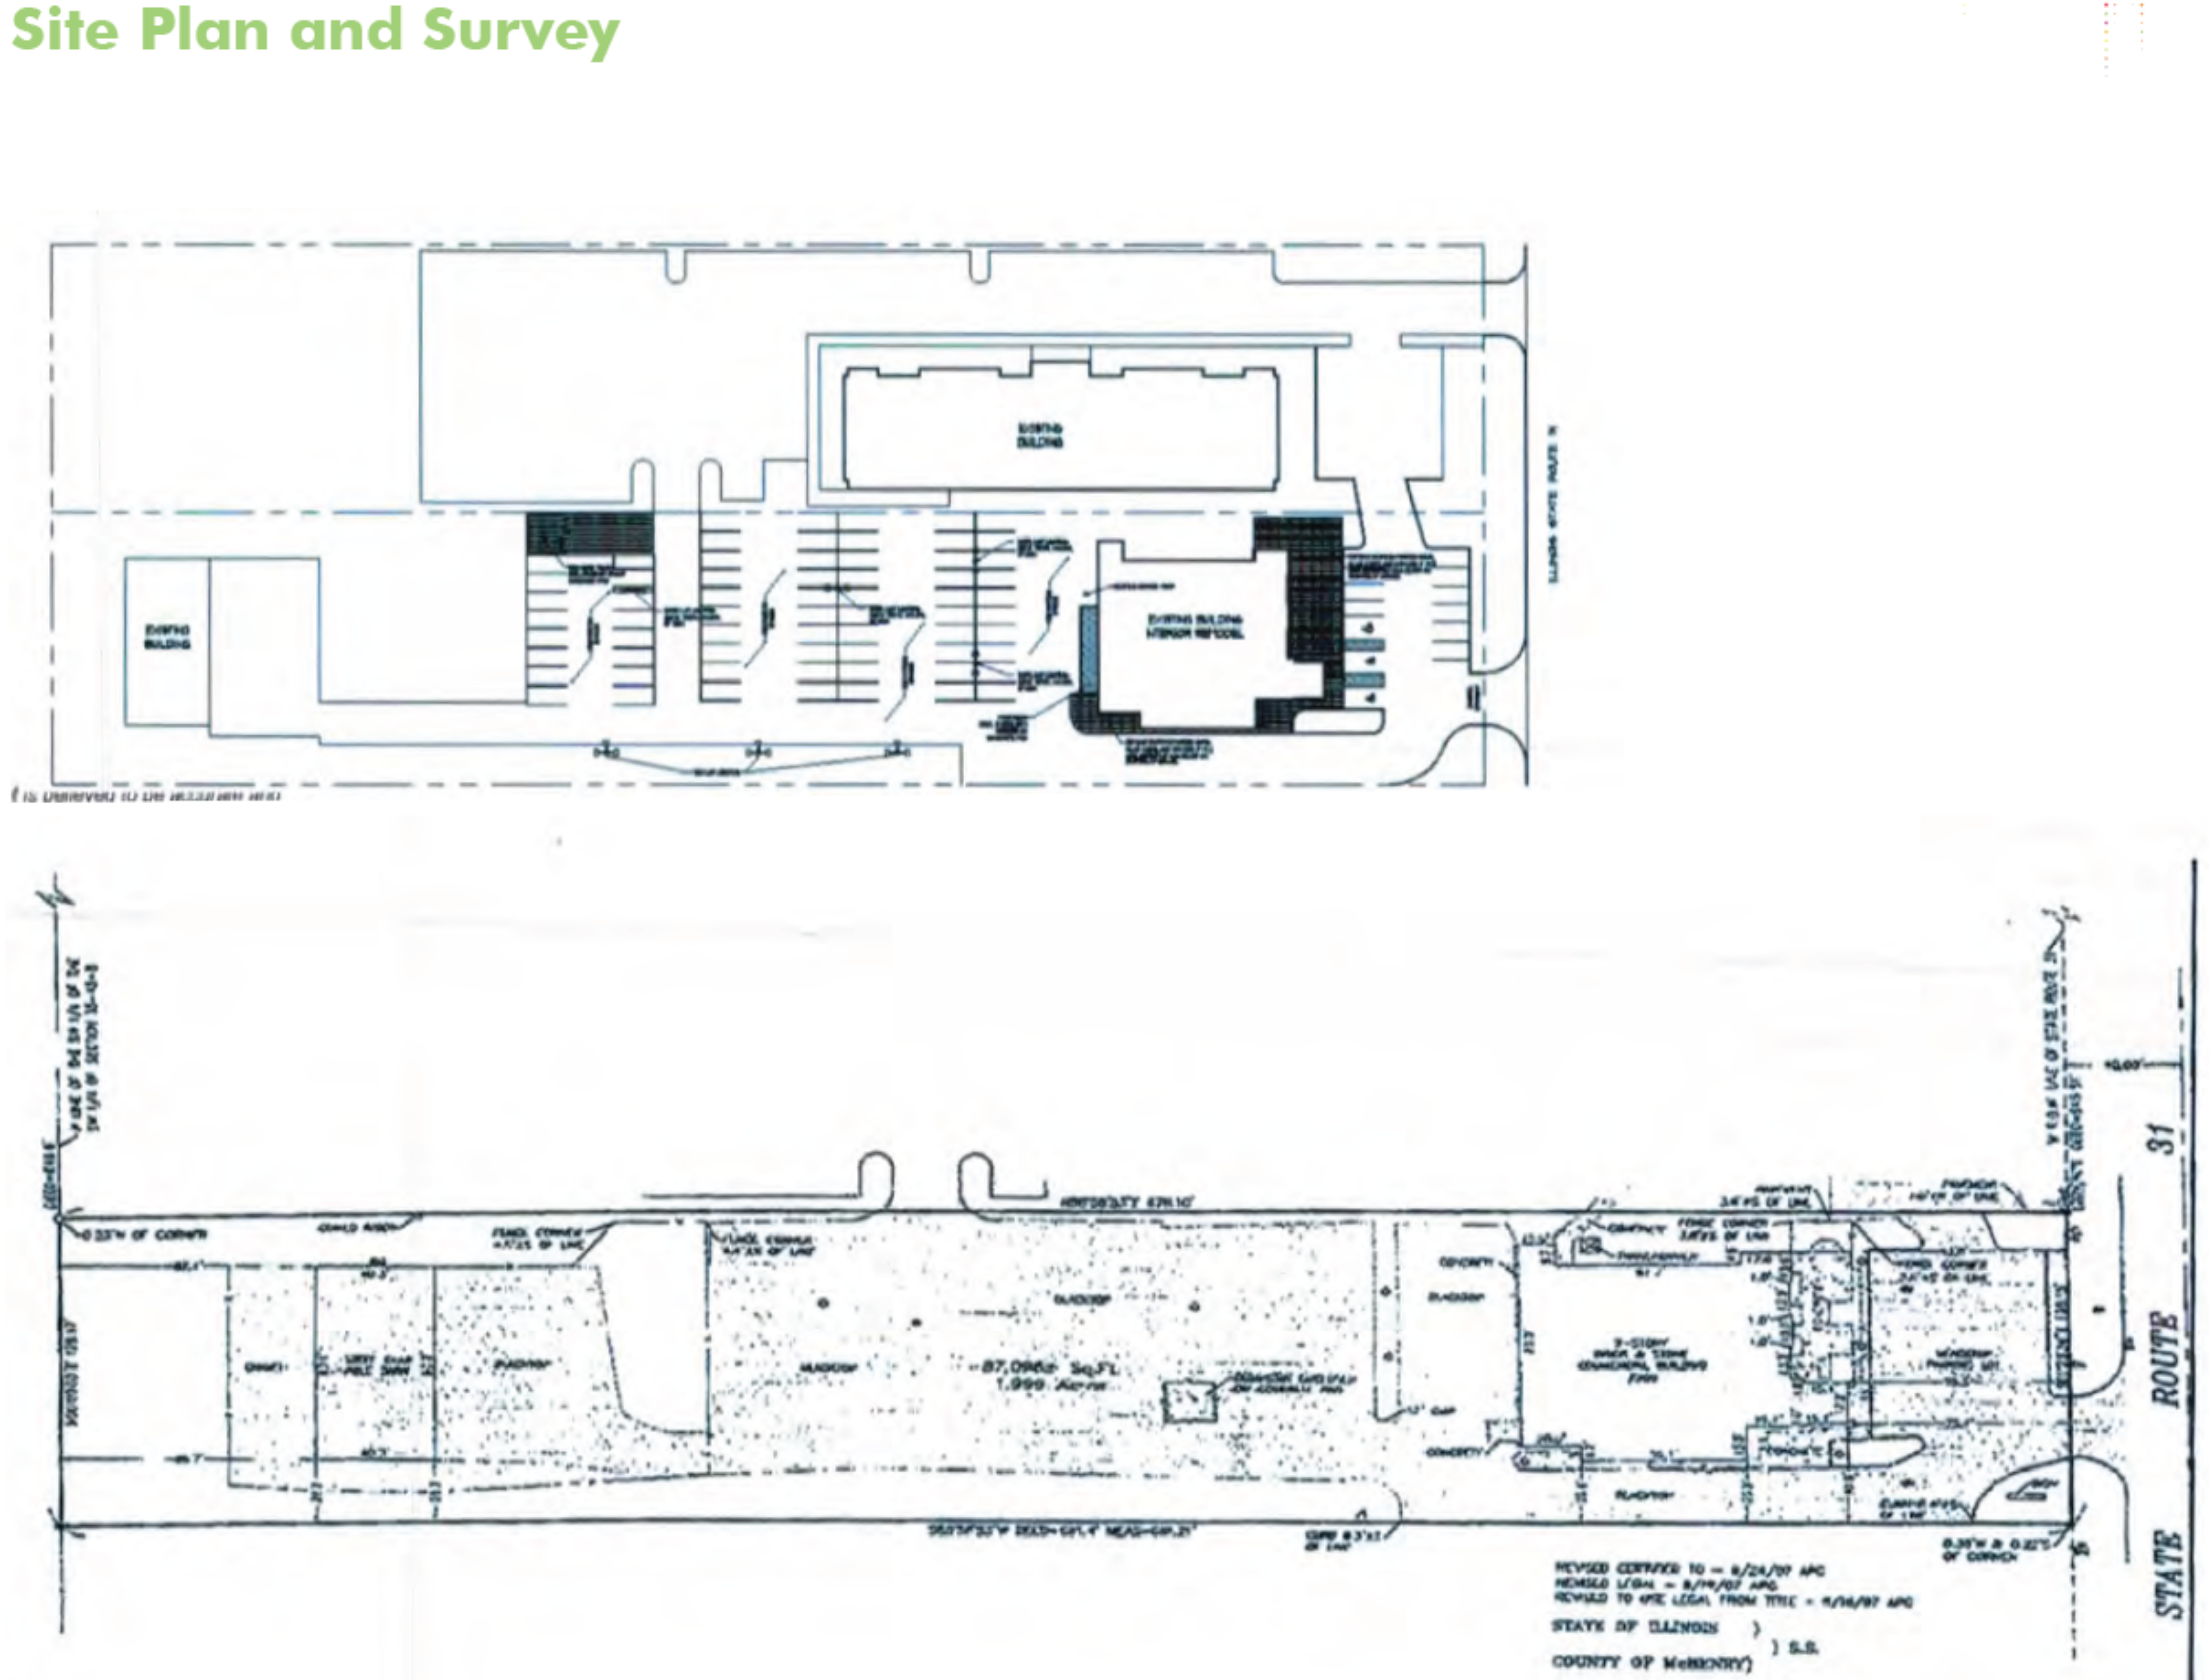 Former Restaurant Available - McHenry: site plan